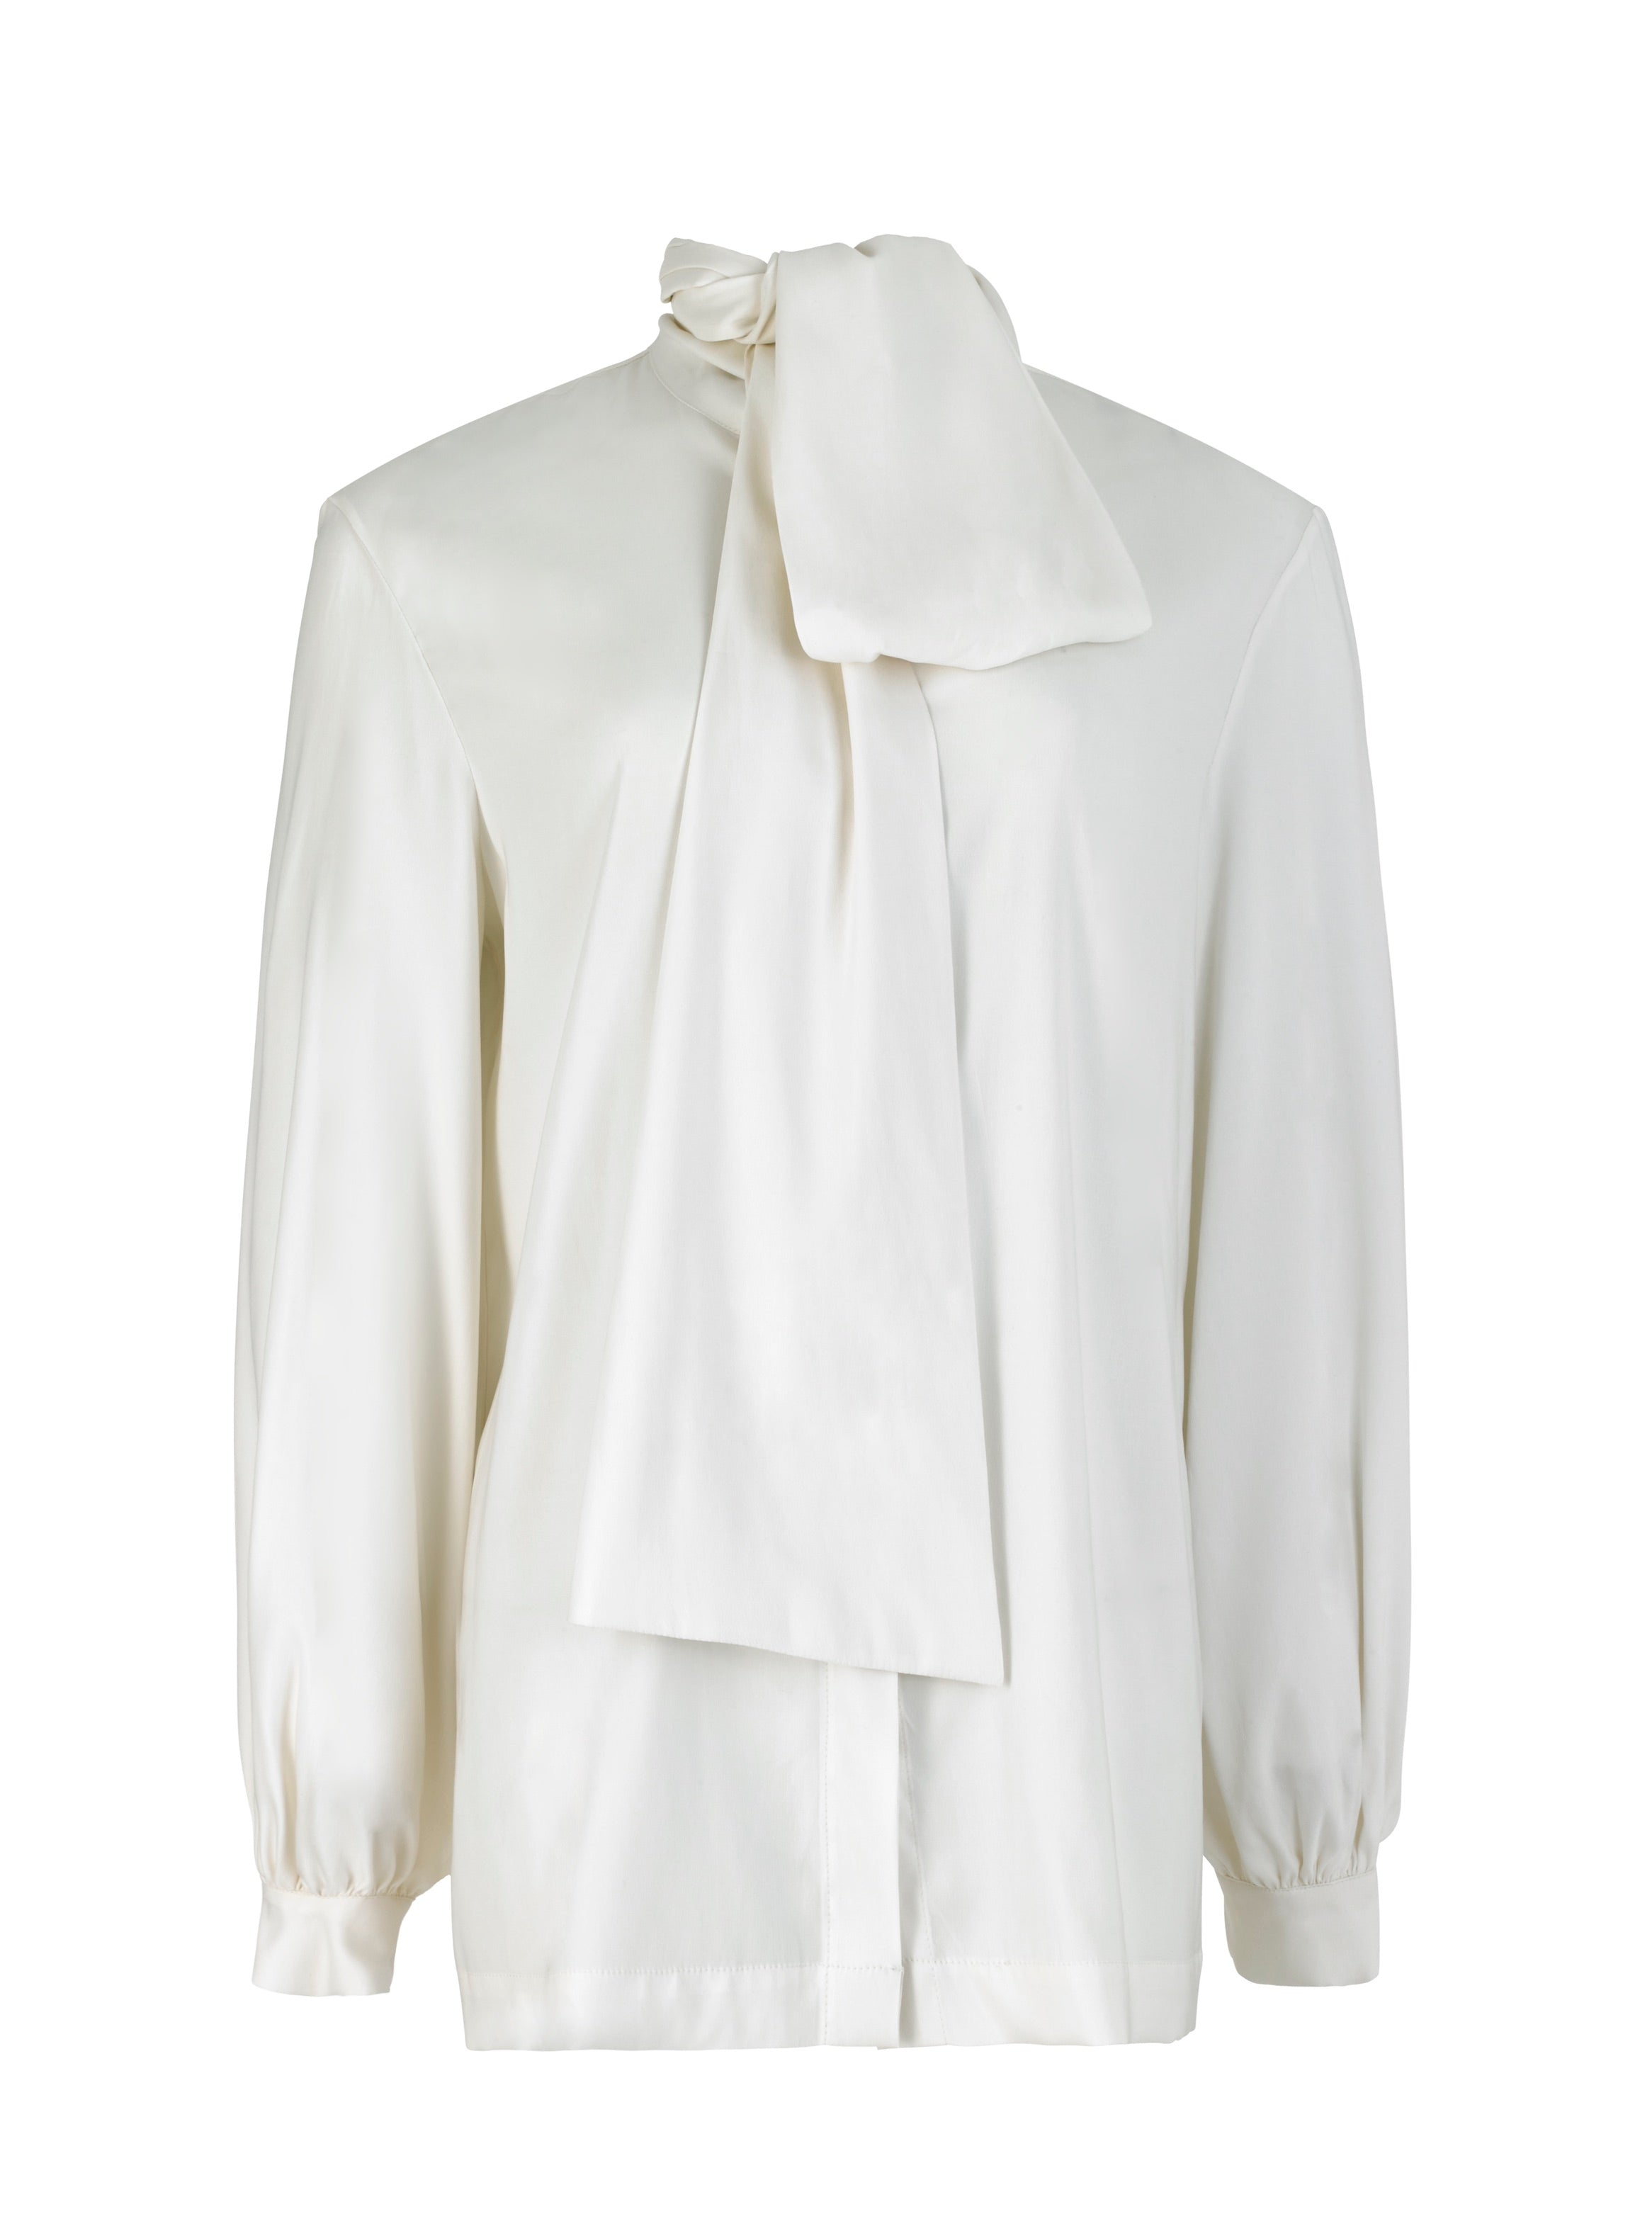 Bow Shirt White Cotton